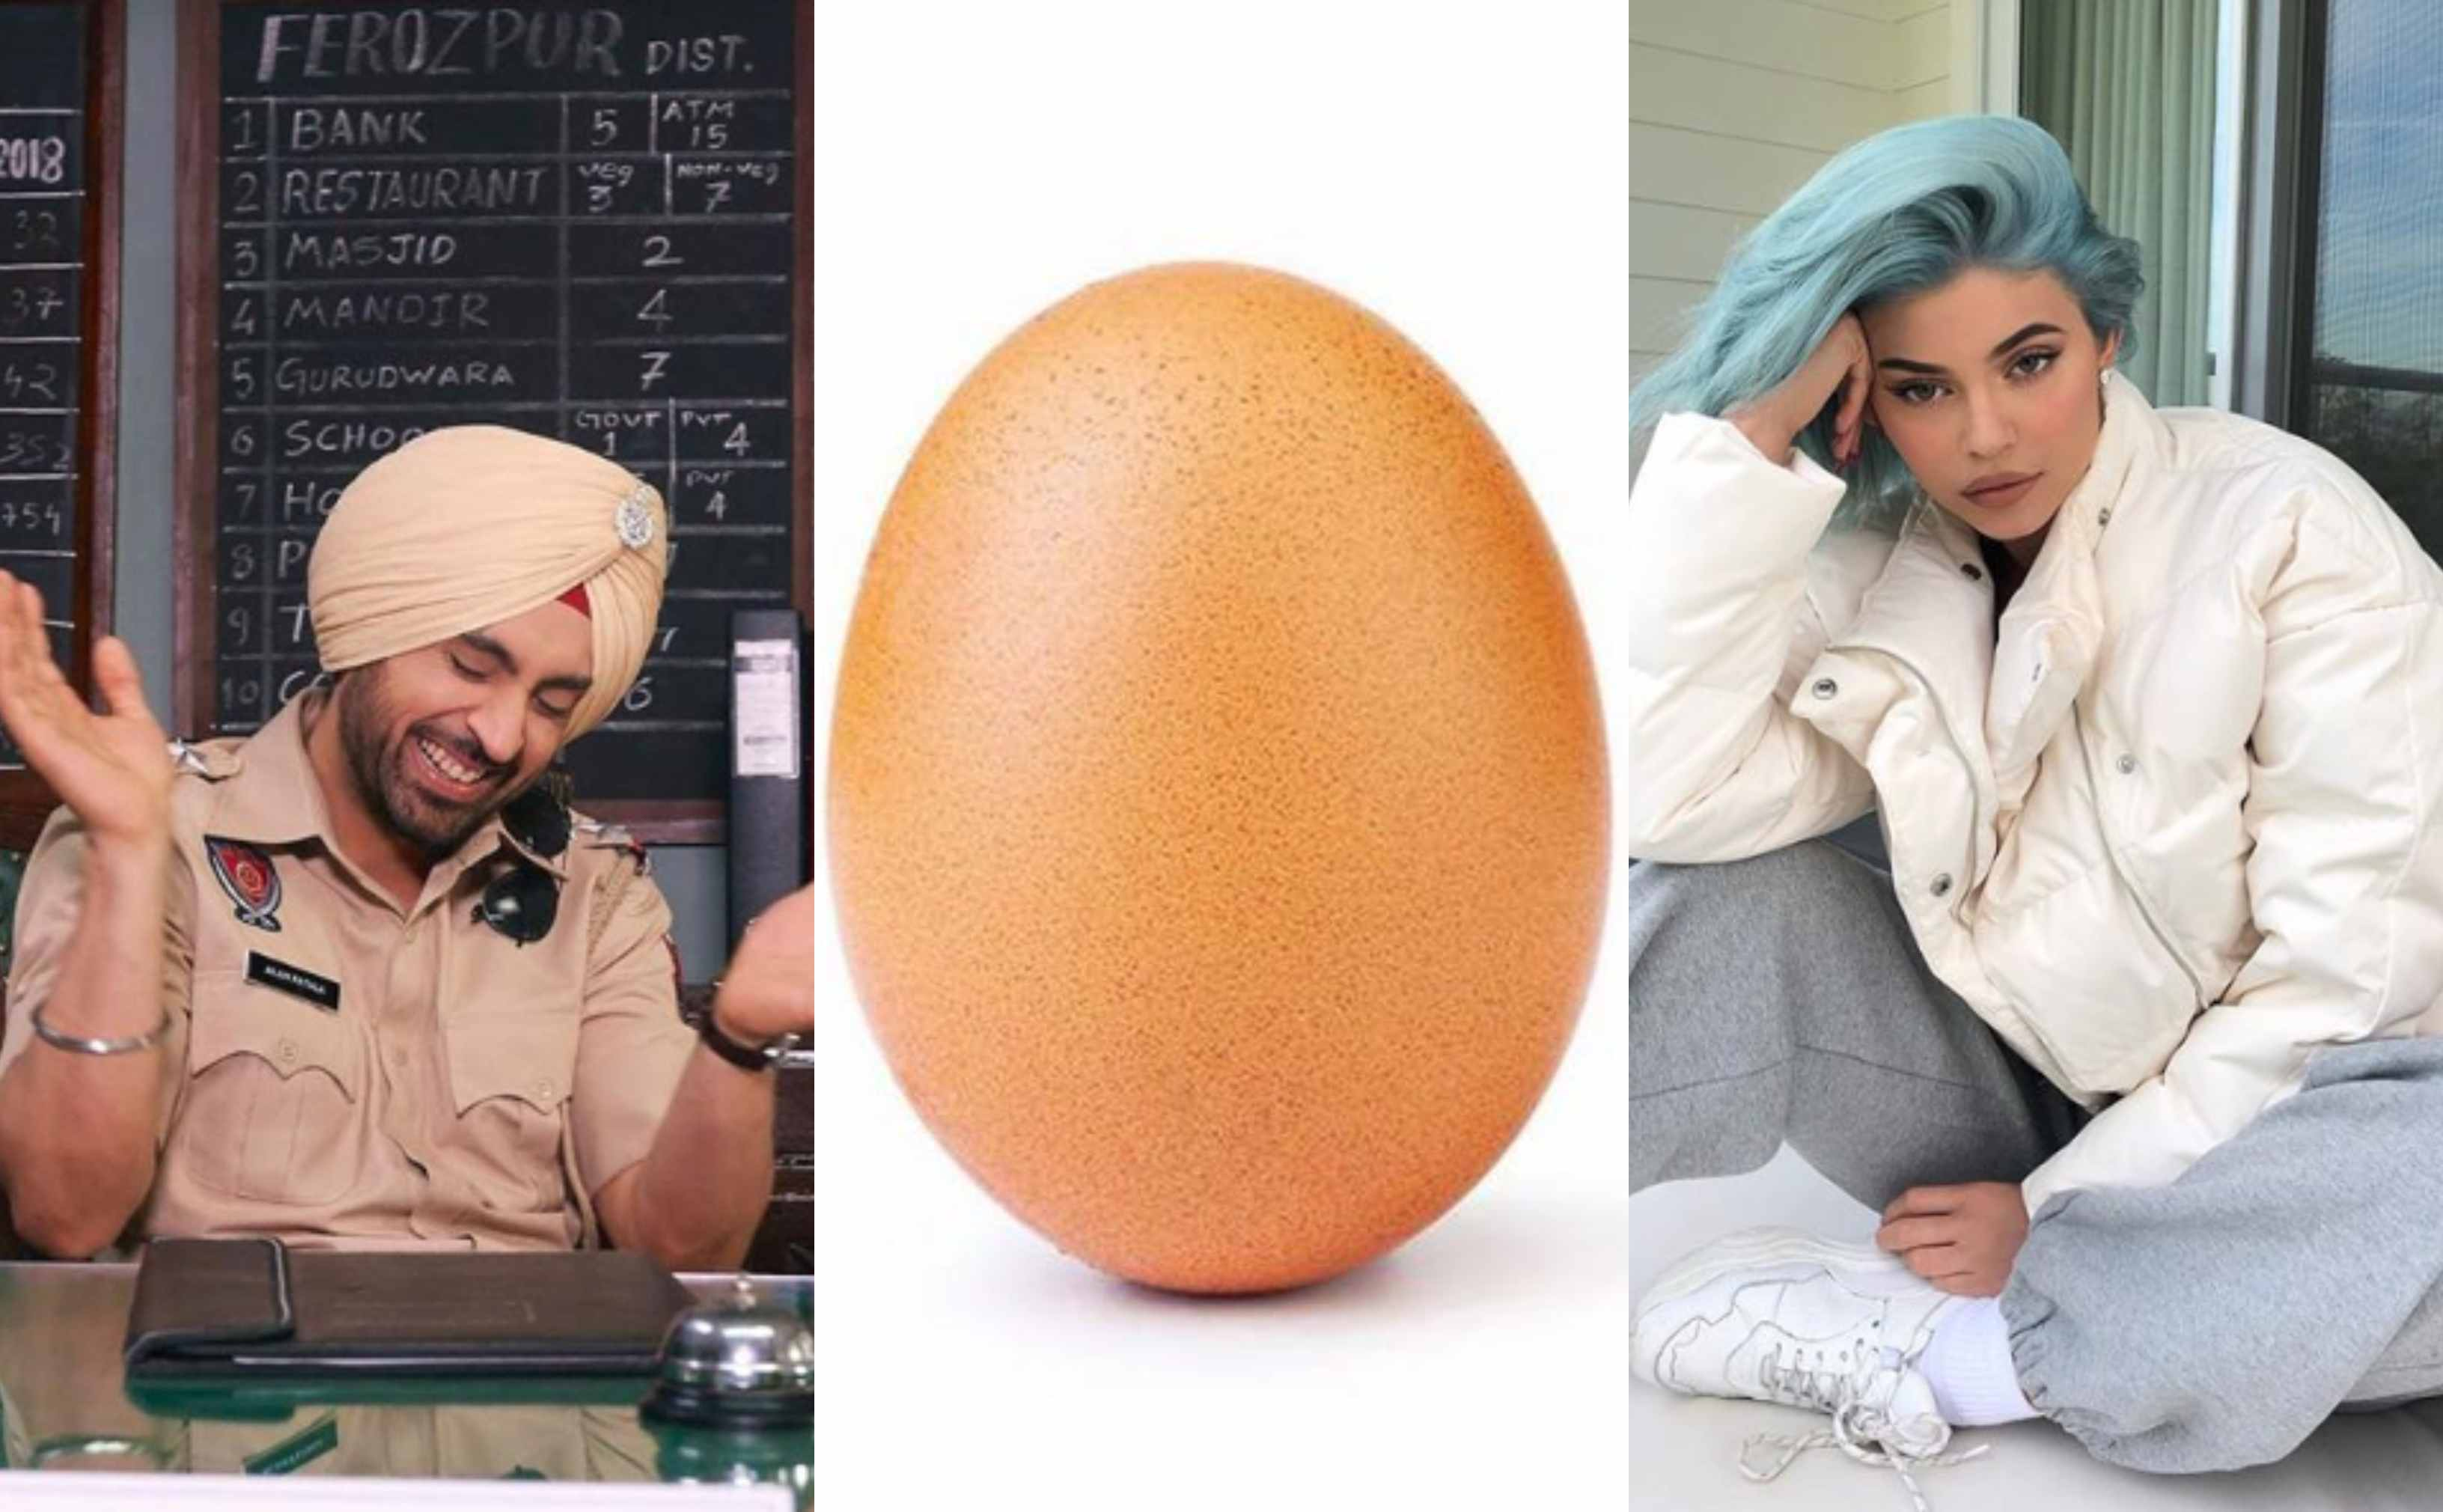 Diljit Dosanjh, took, avenged, Kylie Jenner, egg, dethroned, Model, NewsMobile, Mobile, News, India, Entertainment